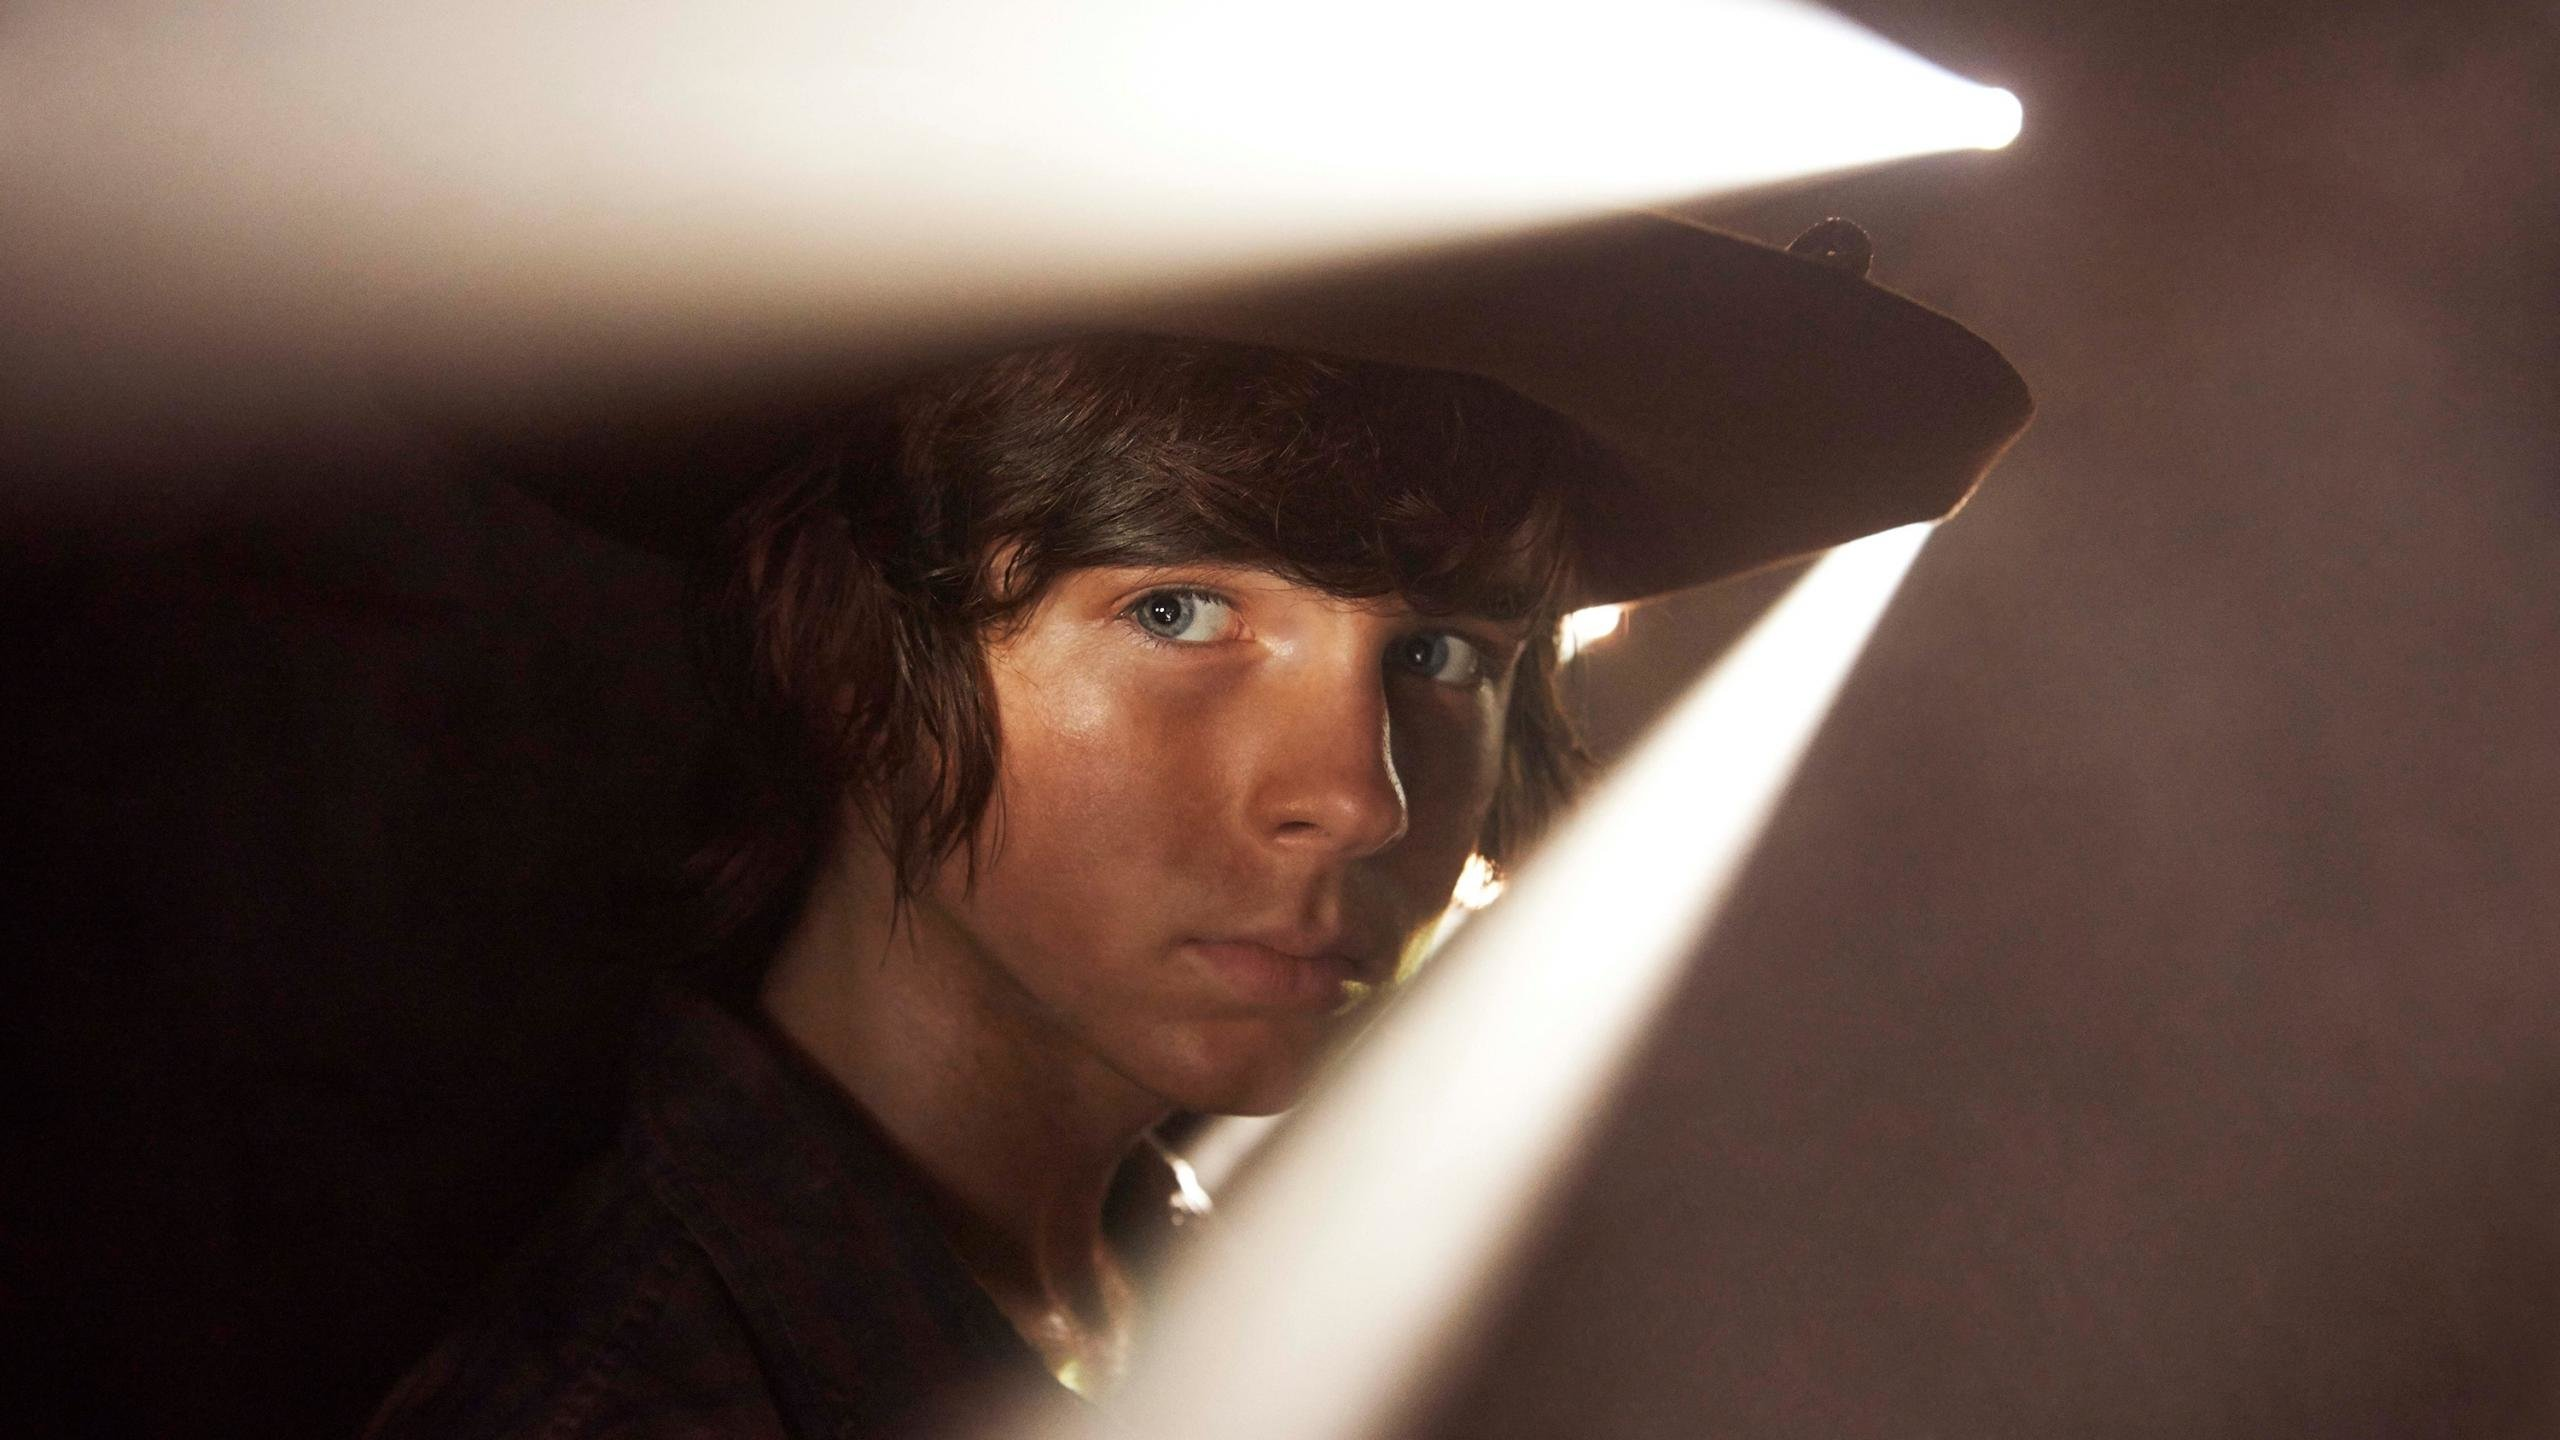 Carl Grimes Wallpapers HD For Desktop Backgrounds